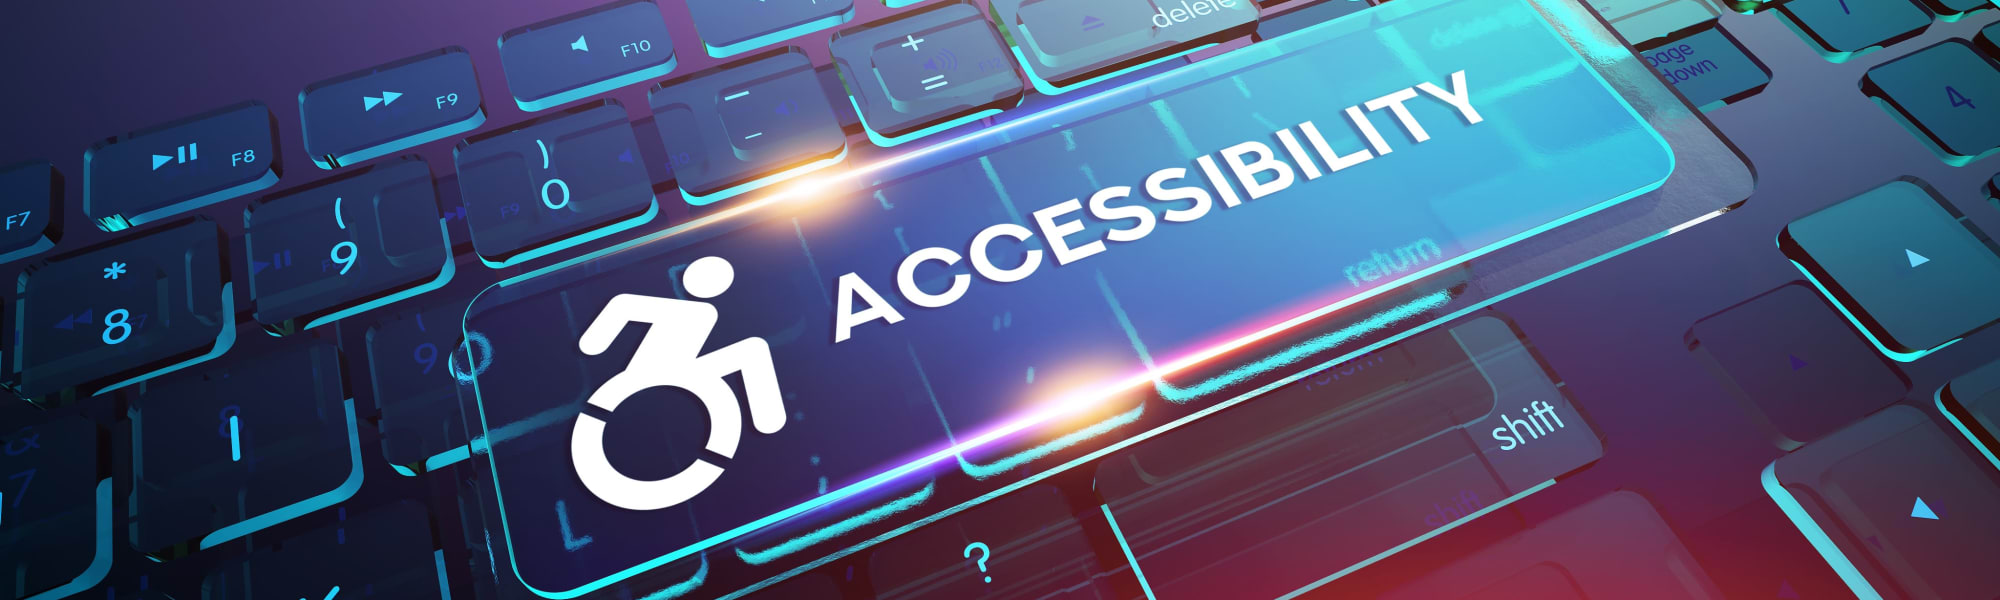 Accessibility policy for The Davis in Fort Worth, Texas